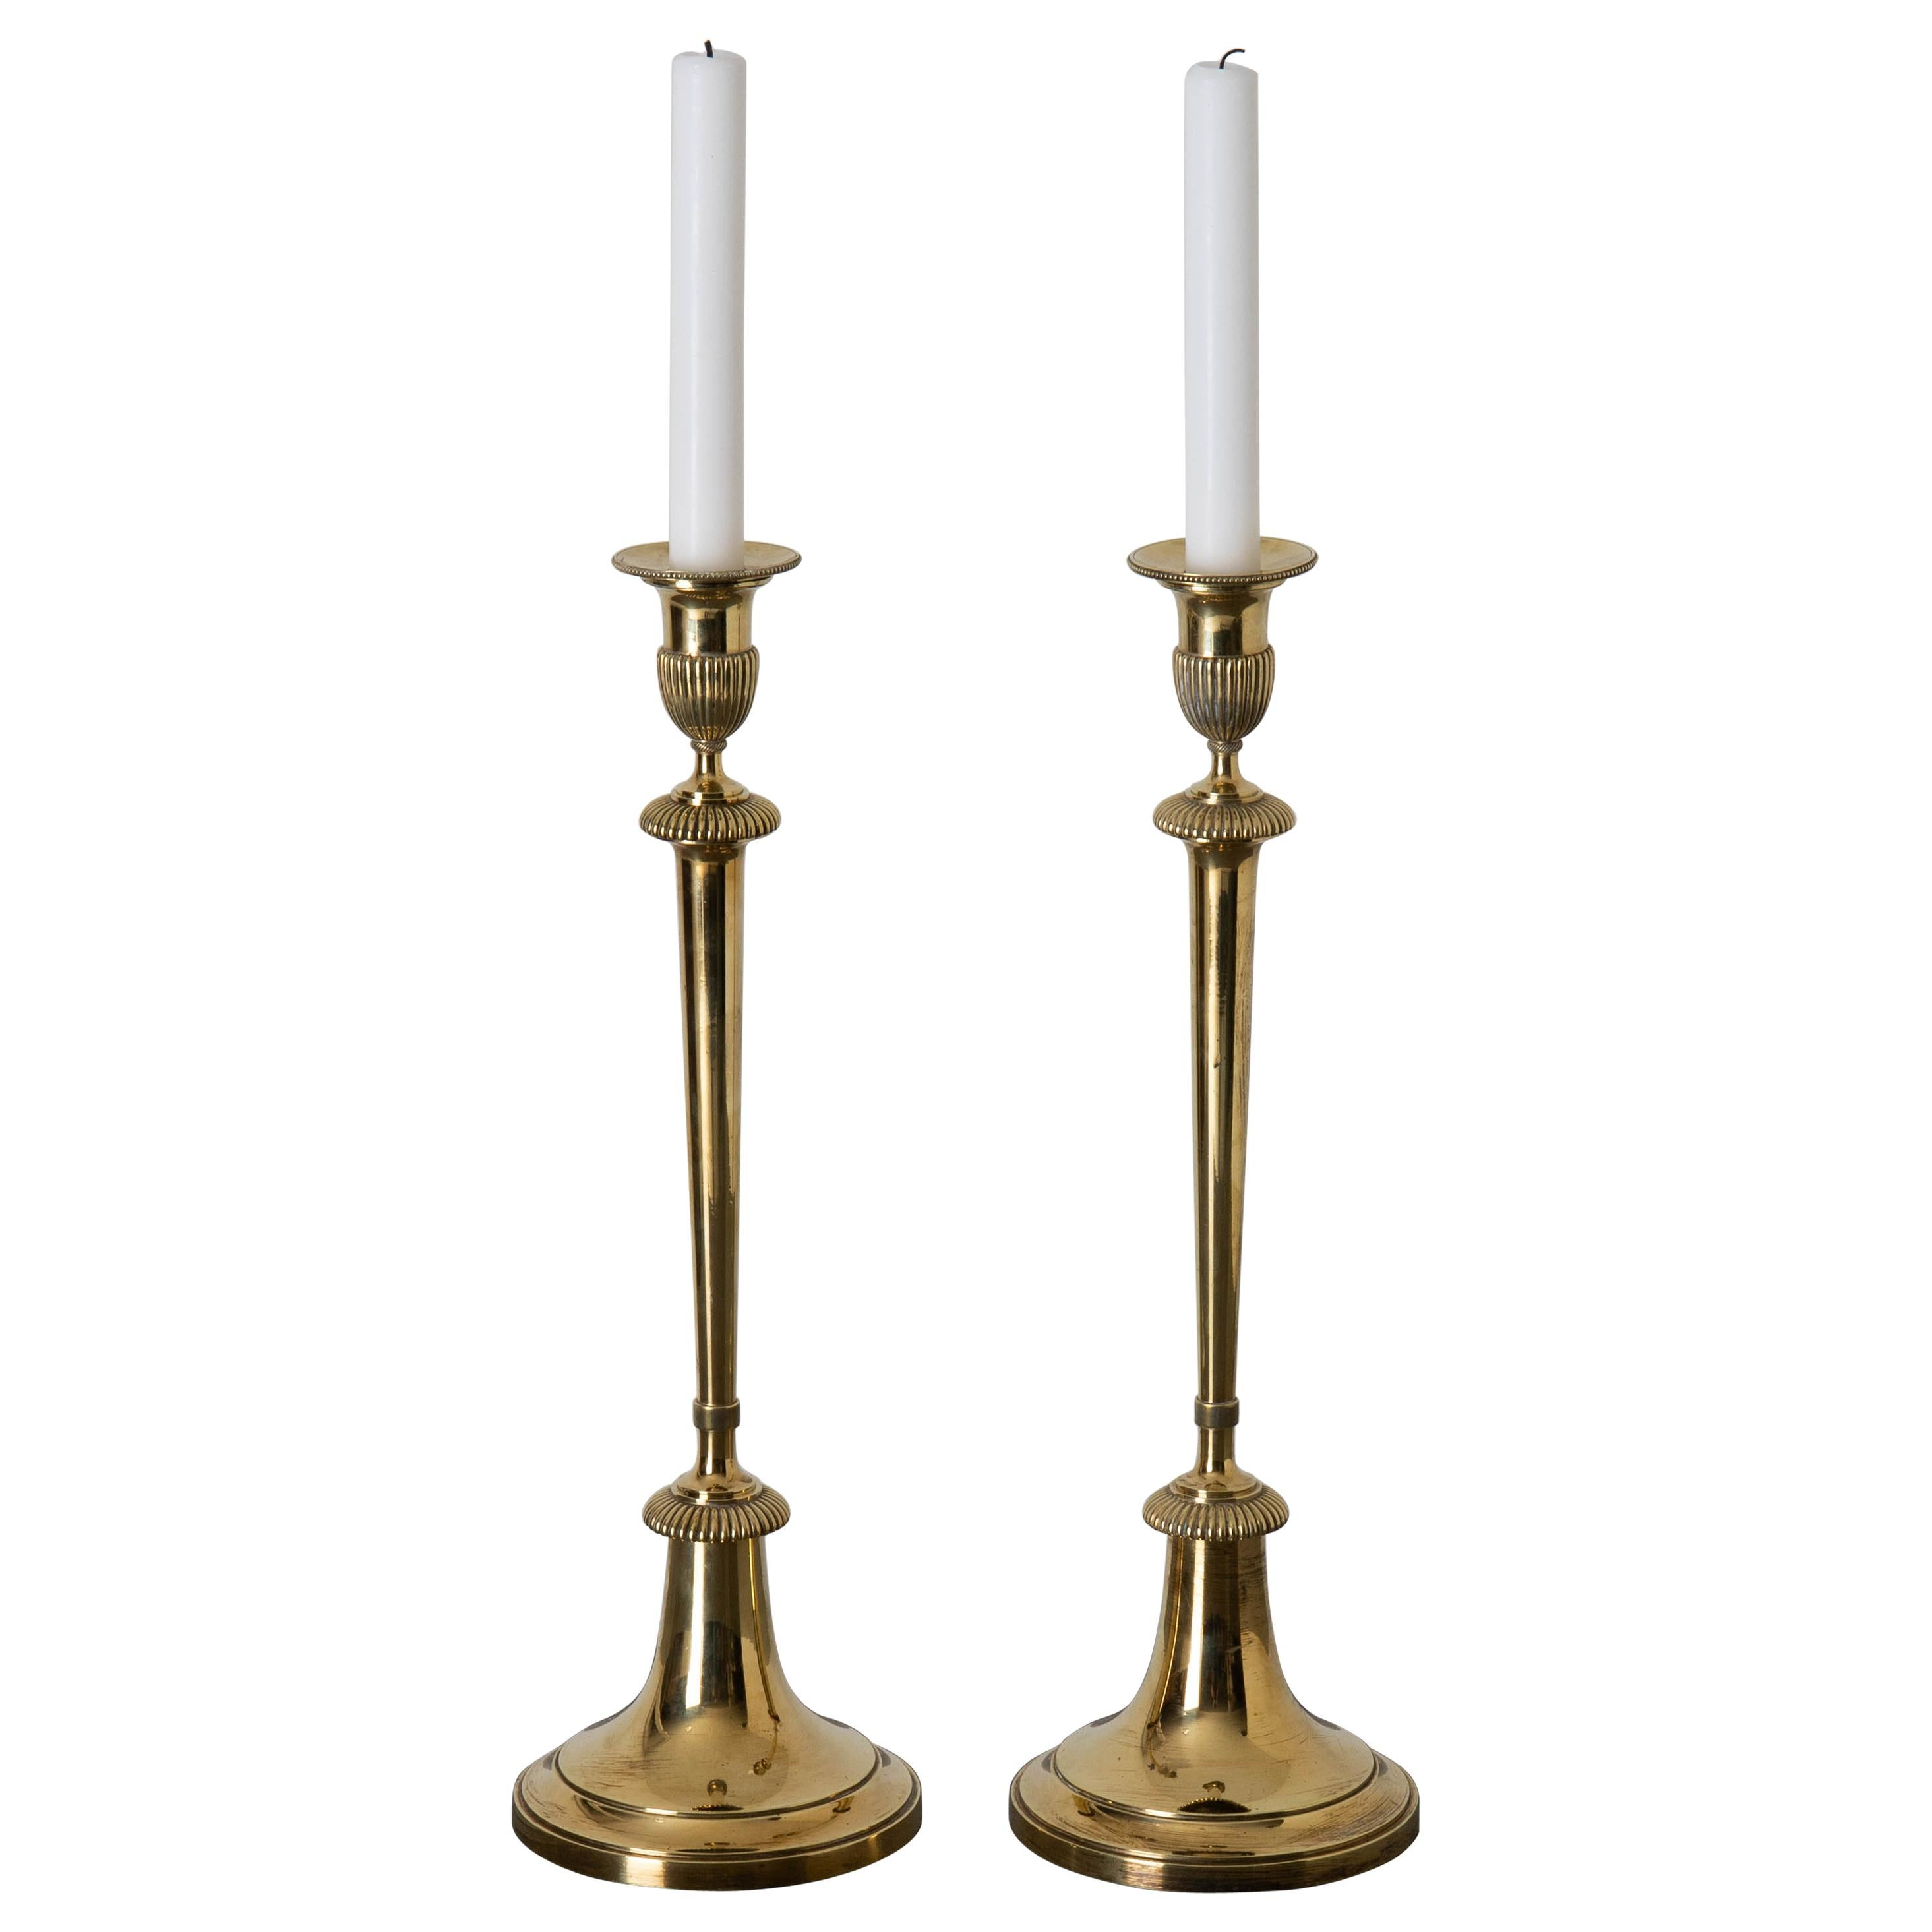 Candlesticks Gustavian Swedish 18th Century Brass, Sweden